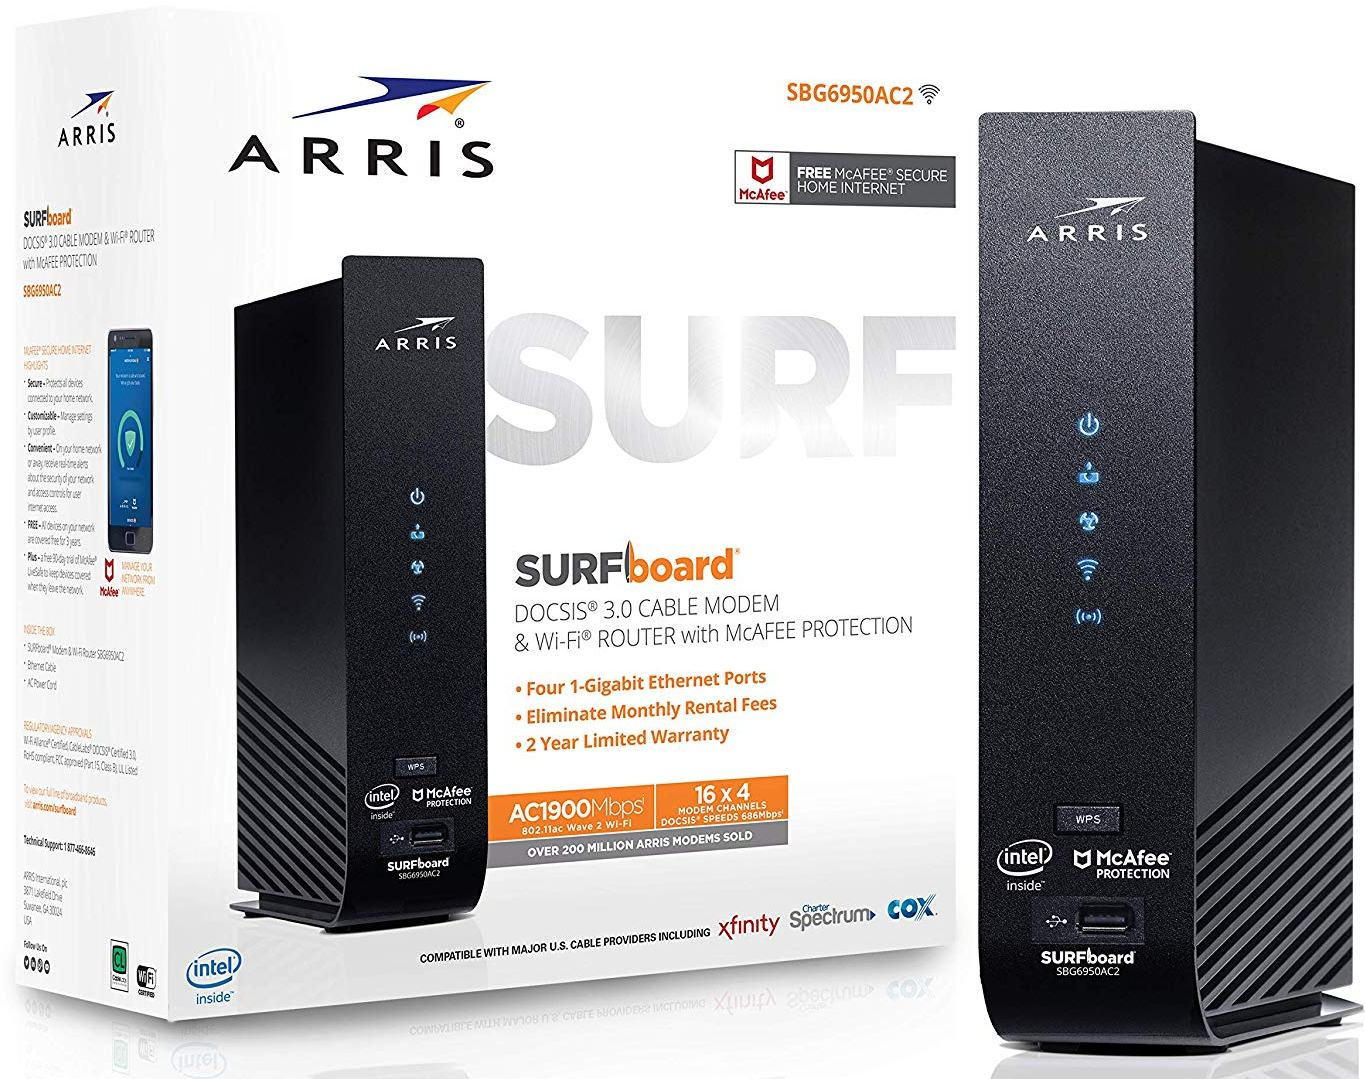 Best Routers For Comcast in 2019 - Installation Guide & Reviews